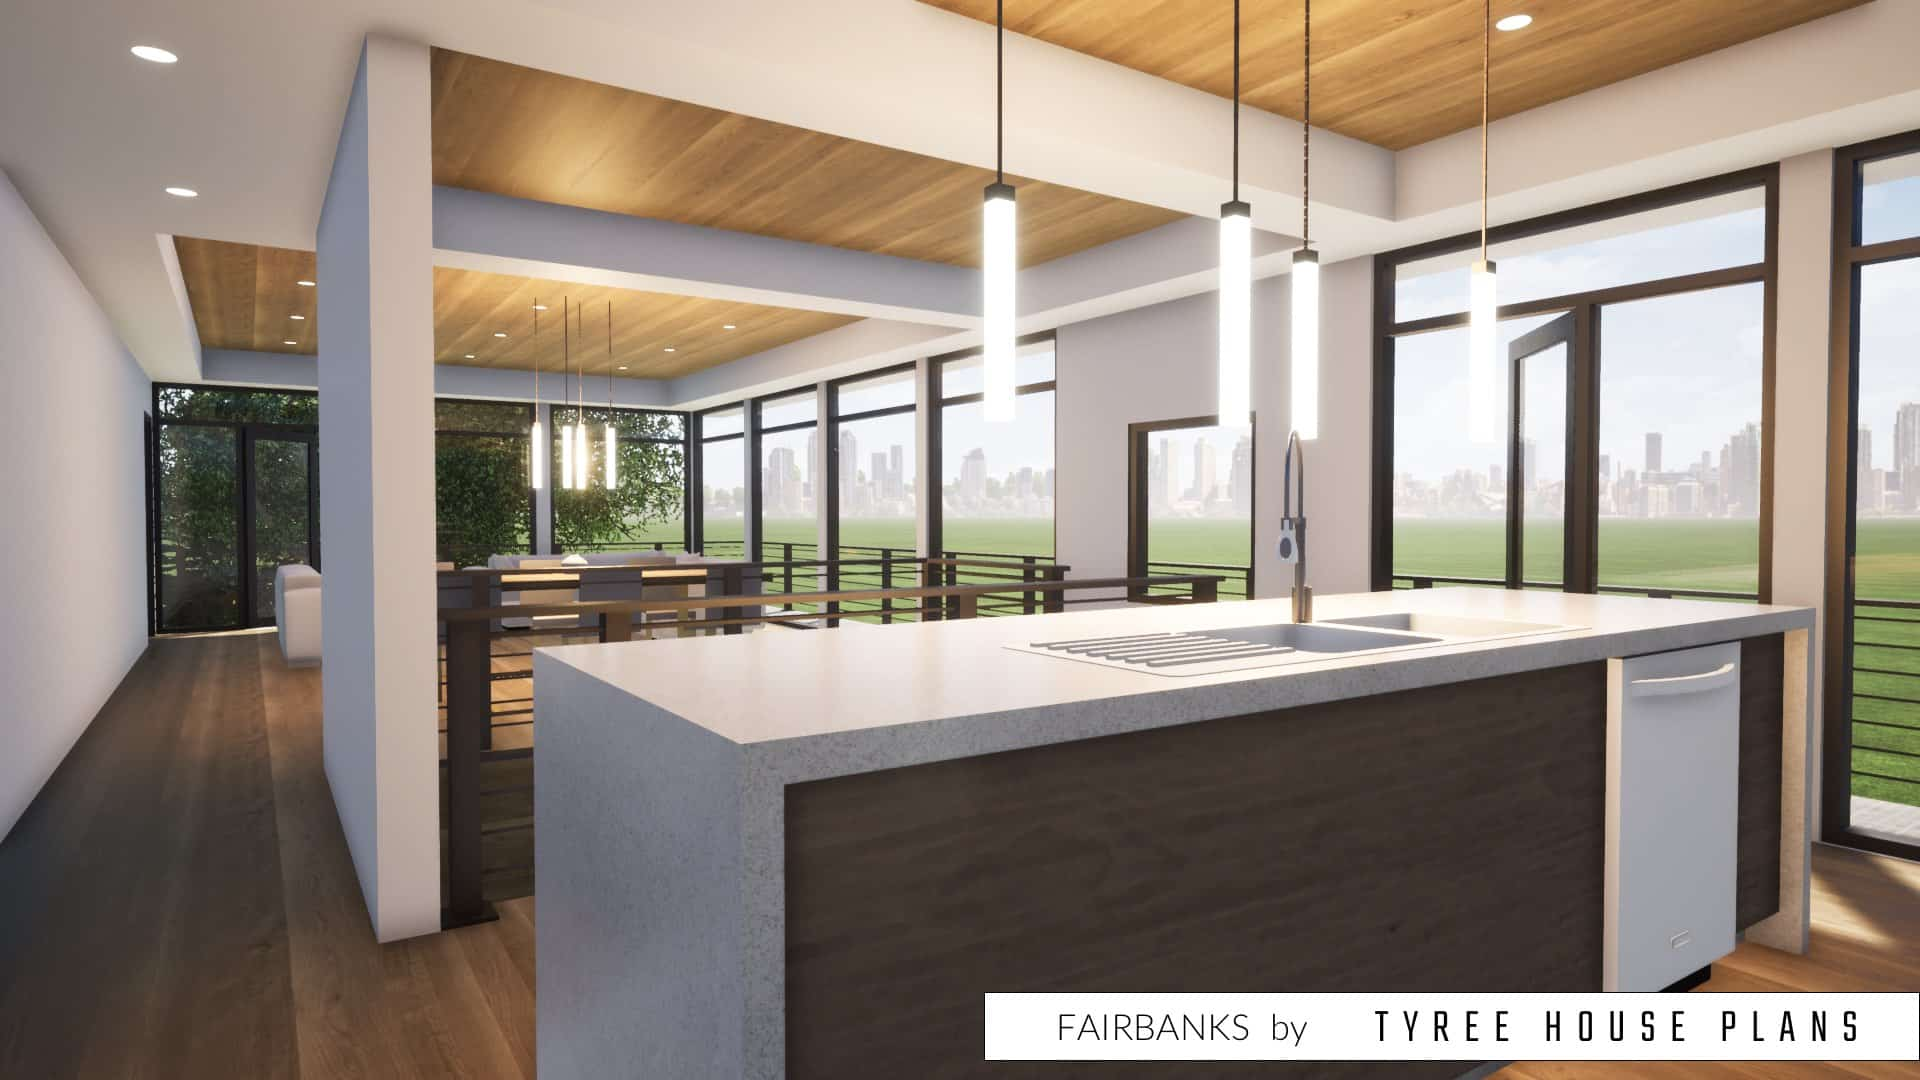 Fairbanks House Plan by Tyree House Plans